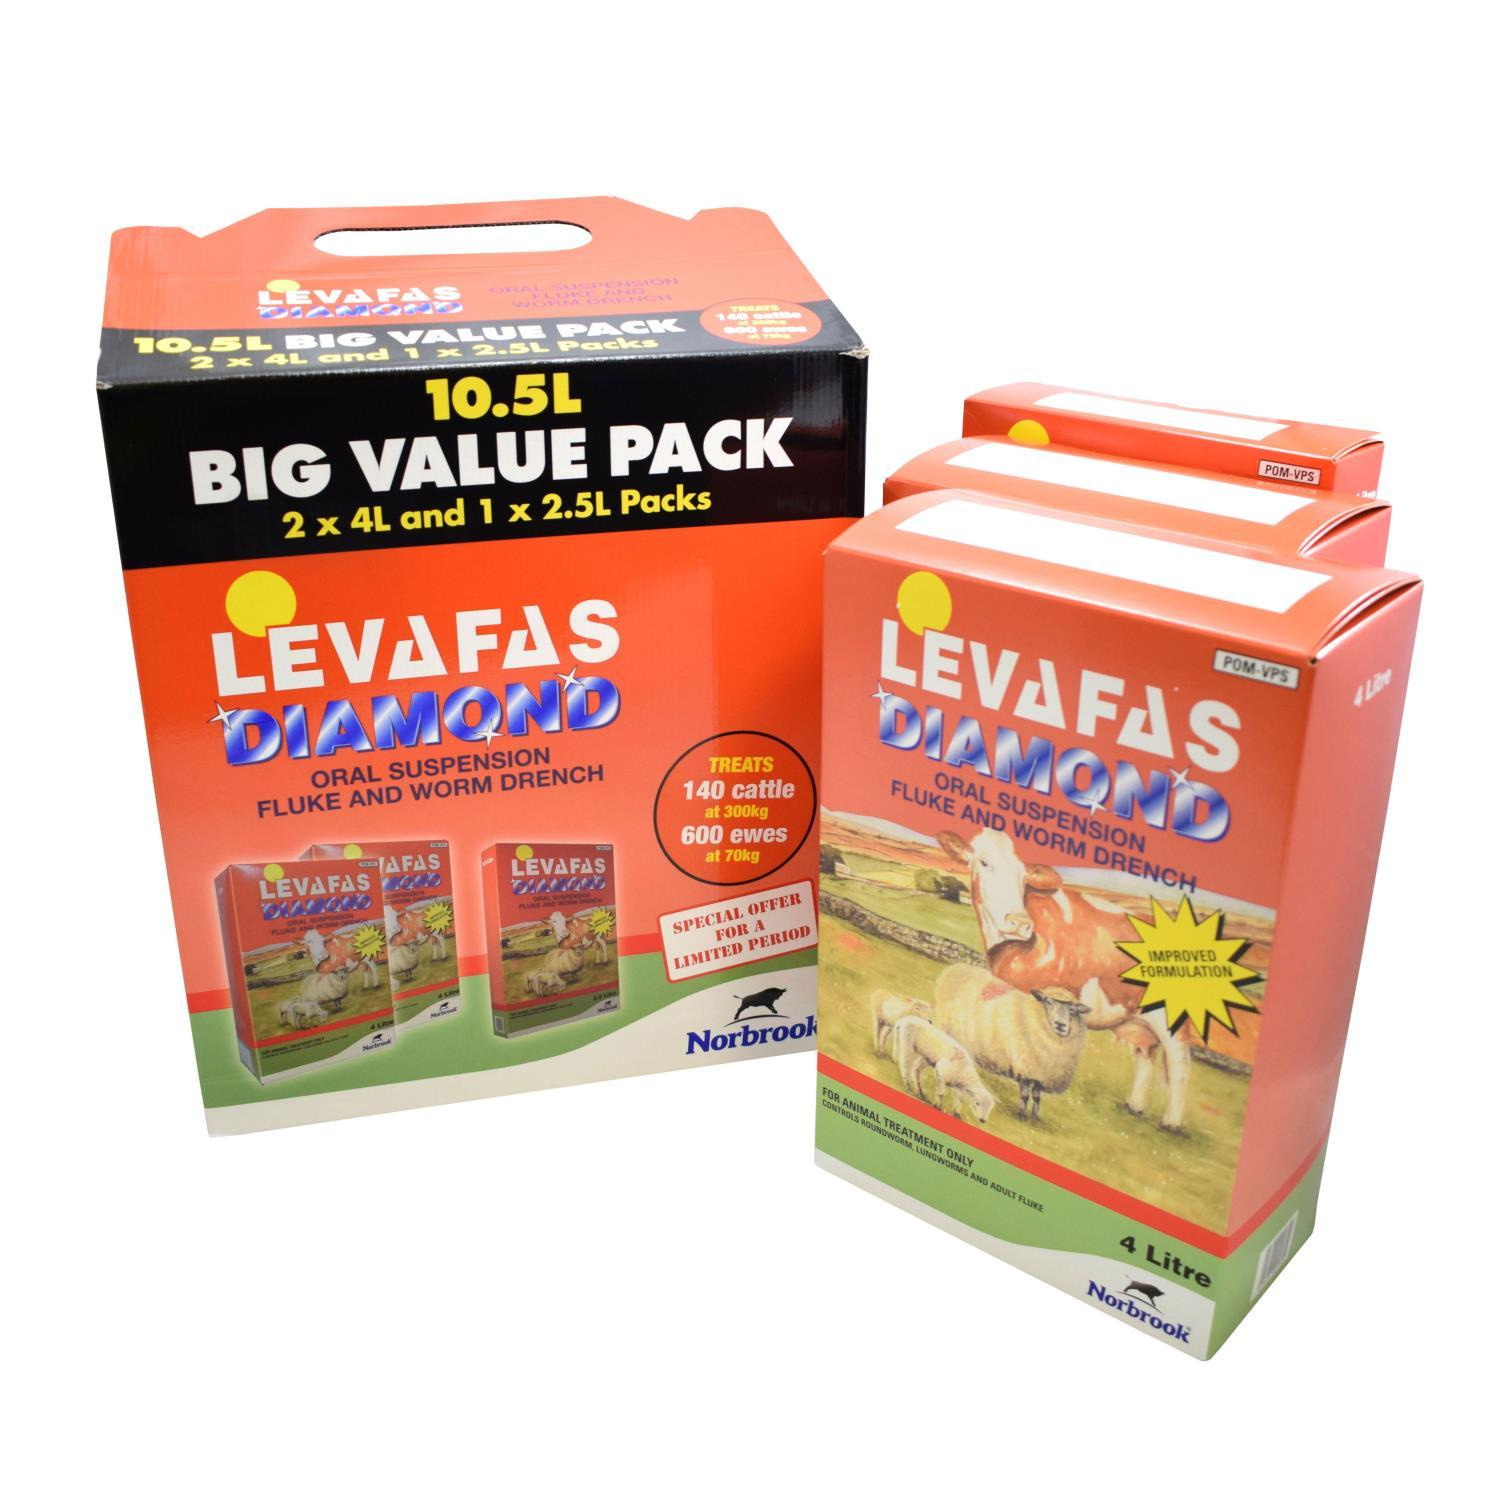 Buy Levafas Diamond 10 5l Promo Pack From Fane Valley